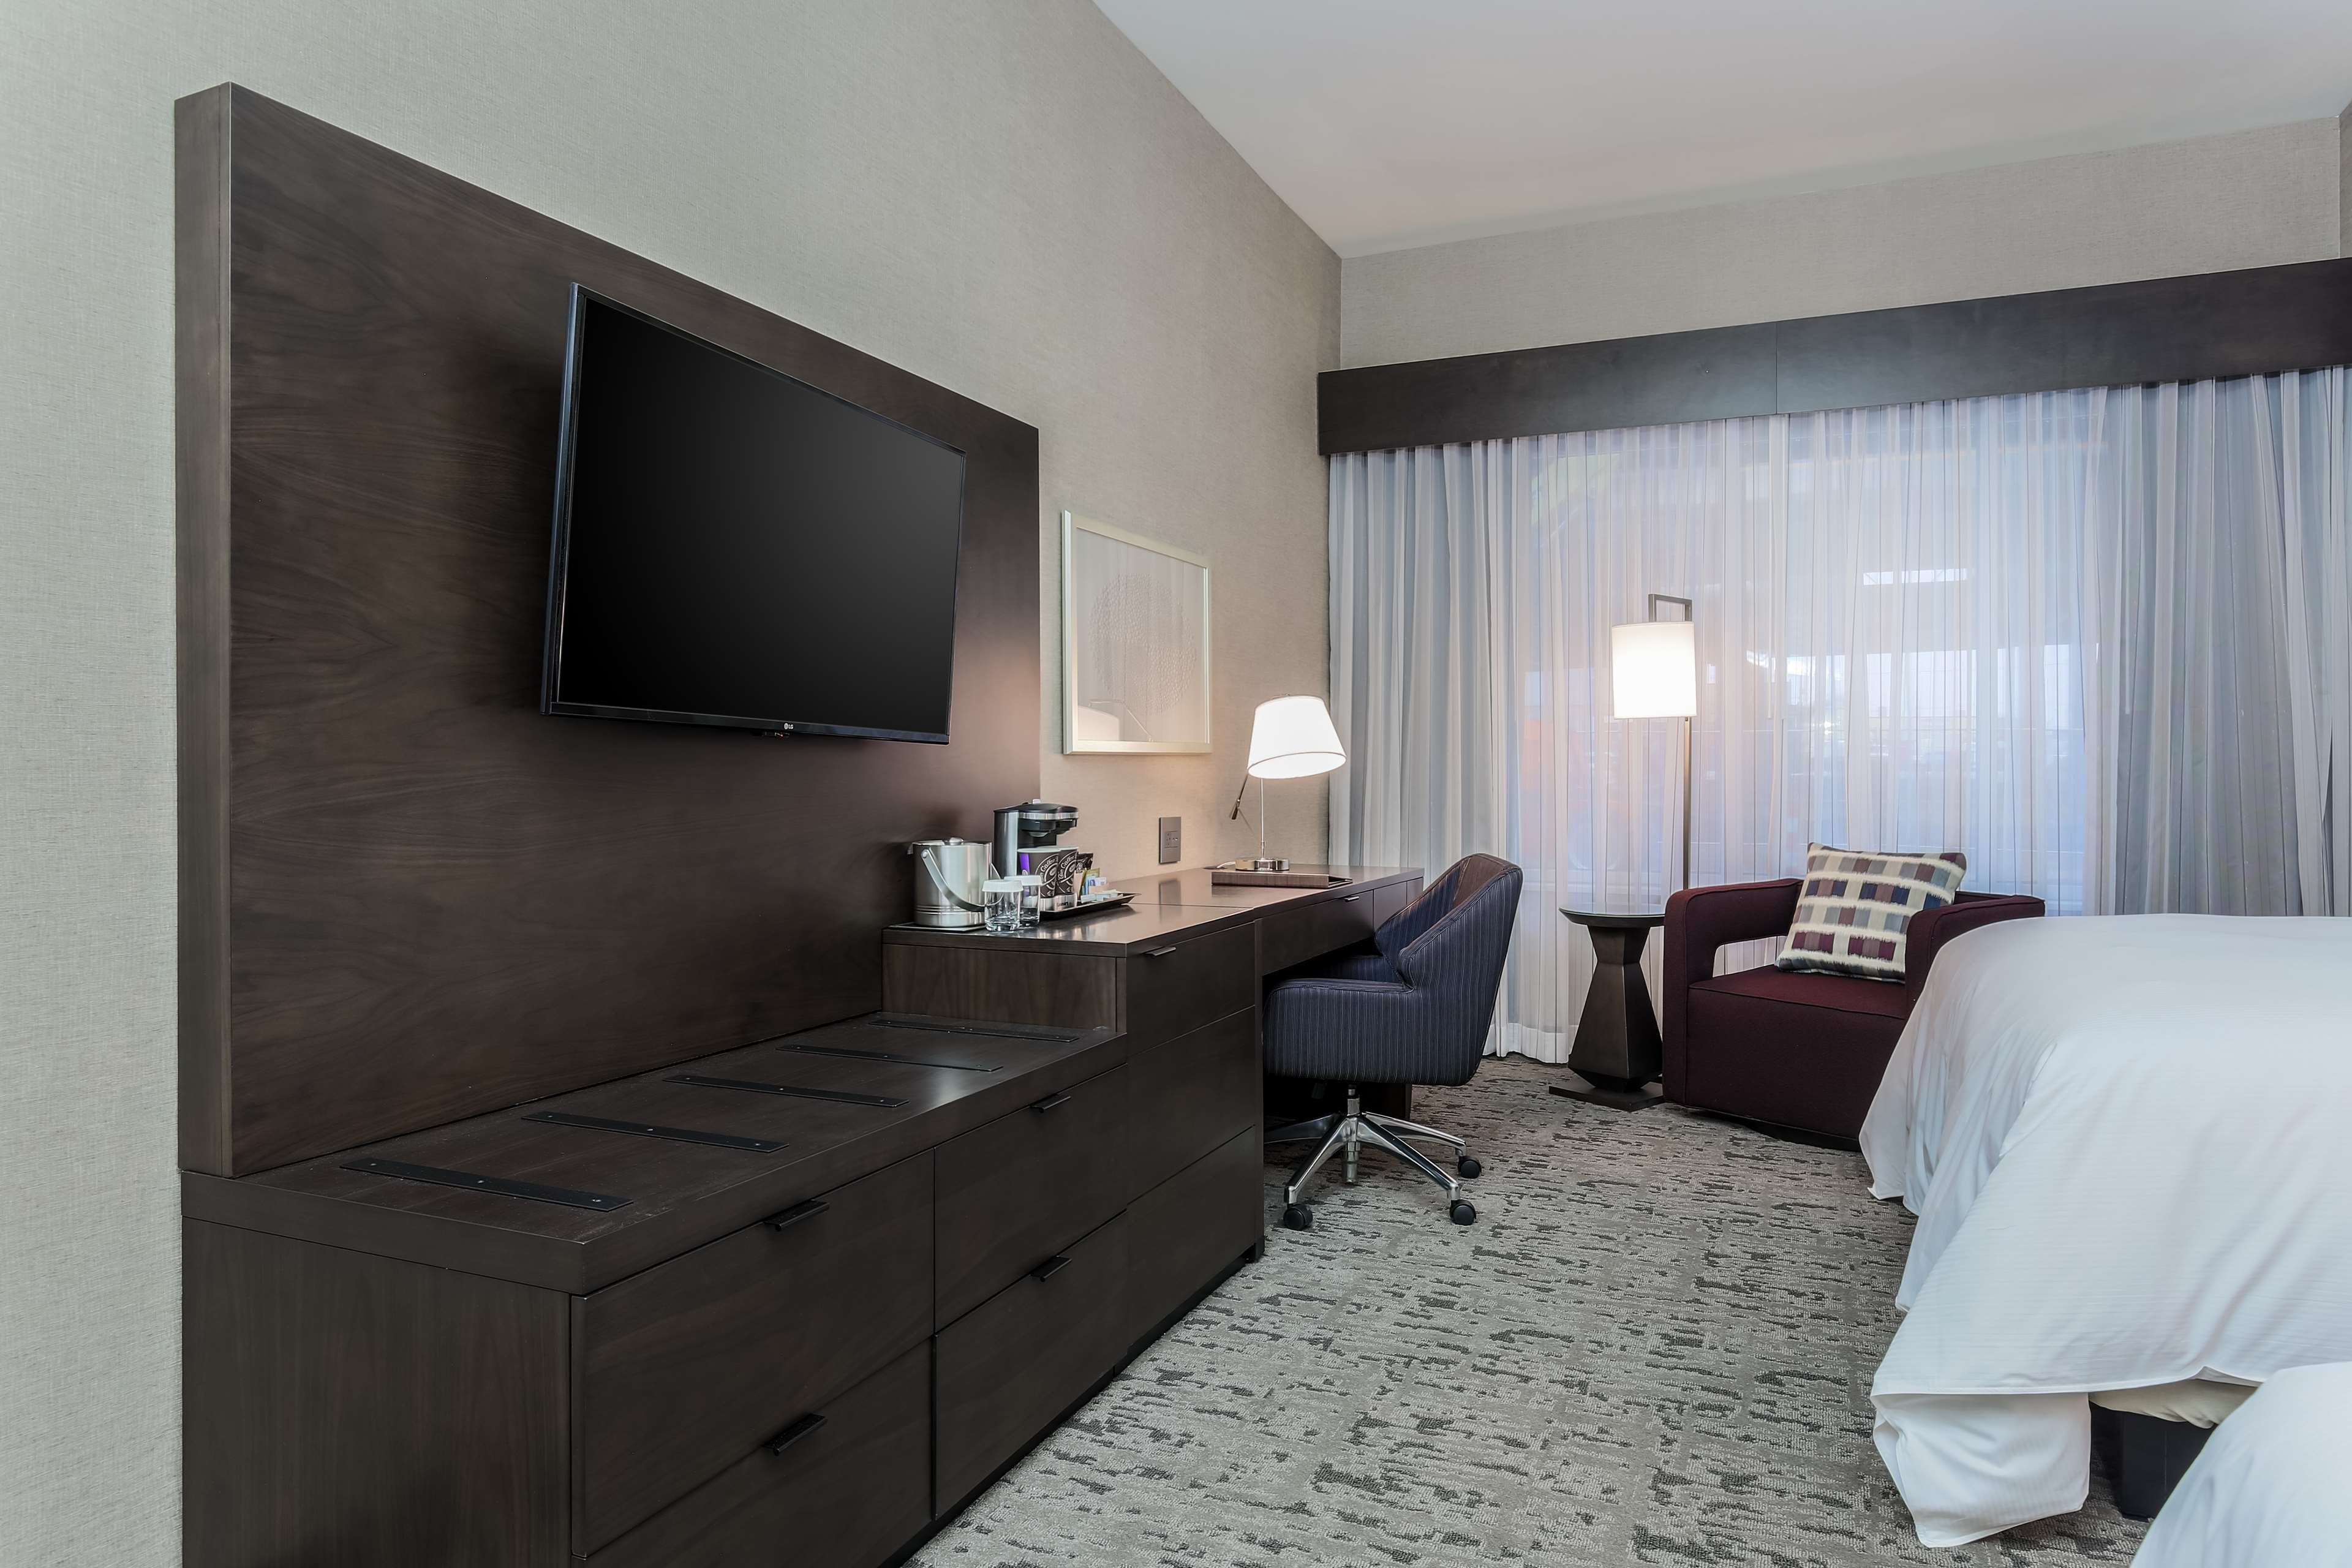 DoubleTree by Hilton Evansville image 43